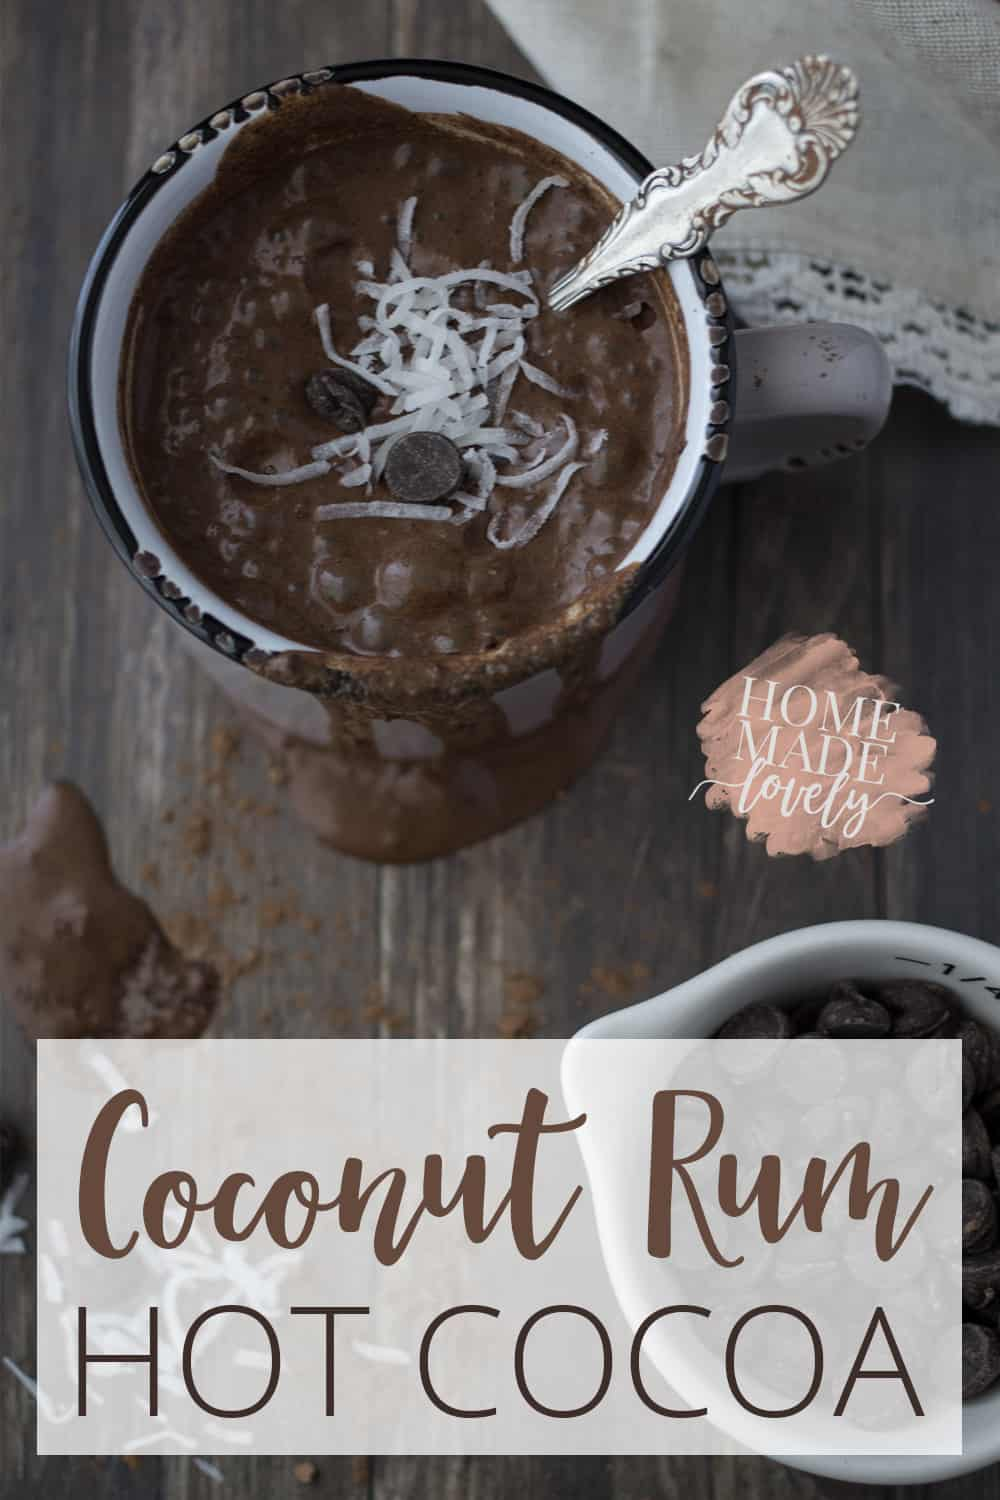 Everyone loves a cup of hot cocoa in the middle of winter. This recipe for coconut rum hot cocoa is sure to warm up your winter evenings!